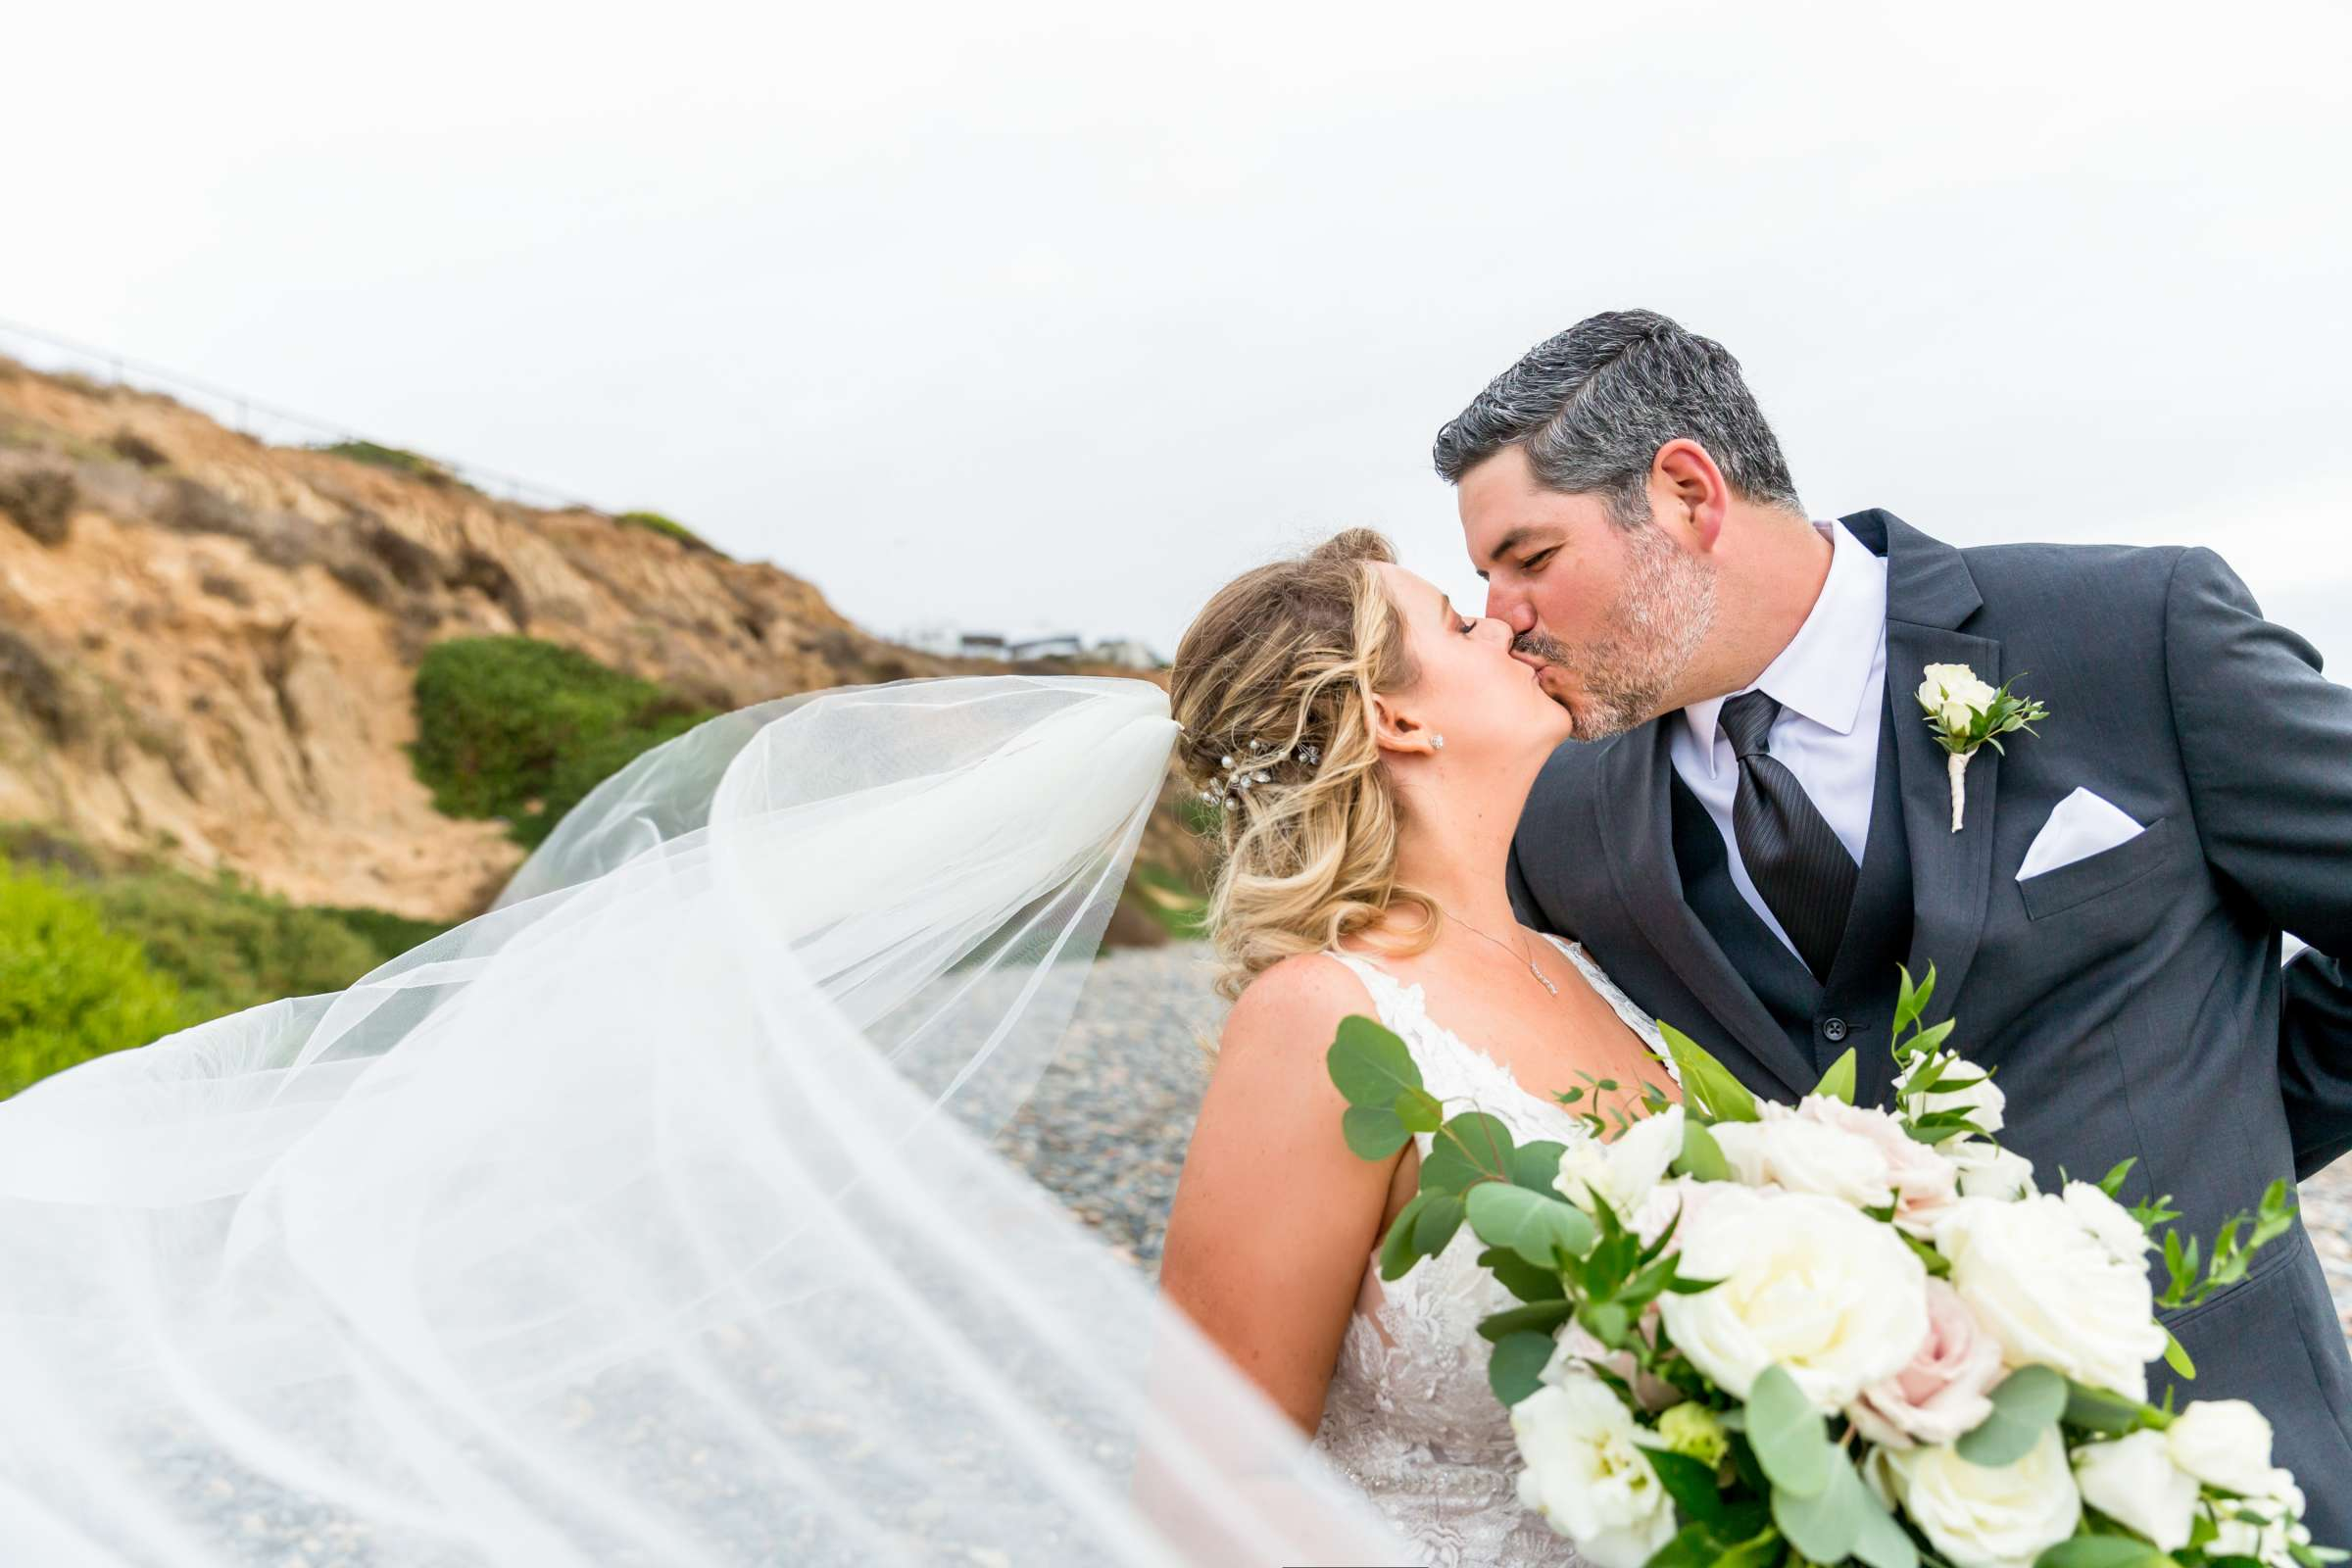 Cape Rey Carlsbad, A Hilton Resort Wedding, Michelle and Justin Wedding Photo #29 by True Photography